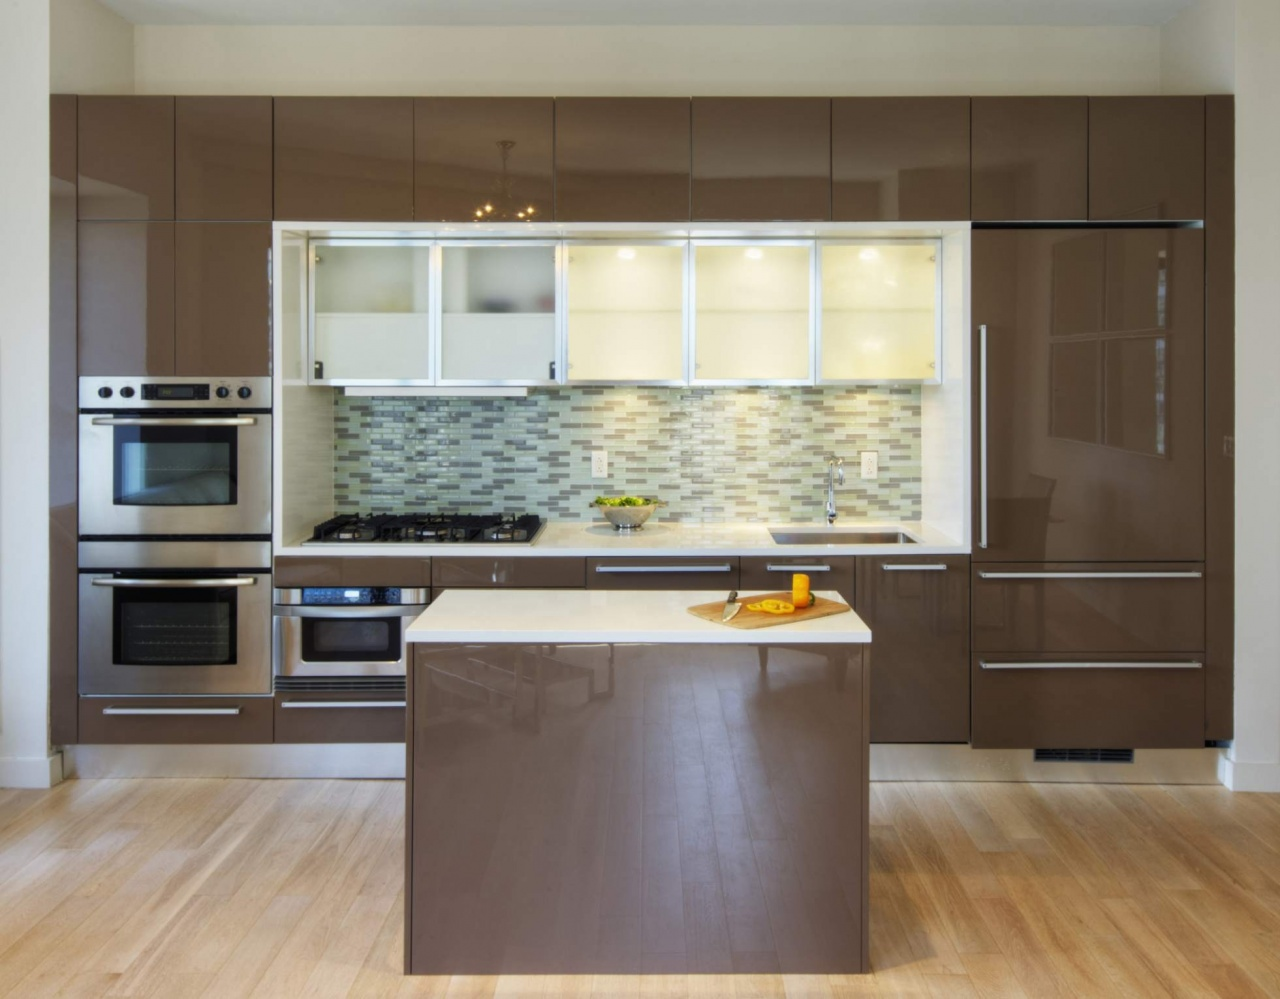 Wood Grain Vinyl Wrap For Cabinets Second Hand Kitchen Cabinet